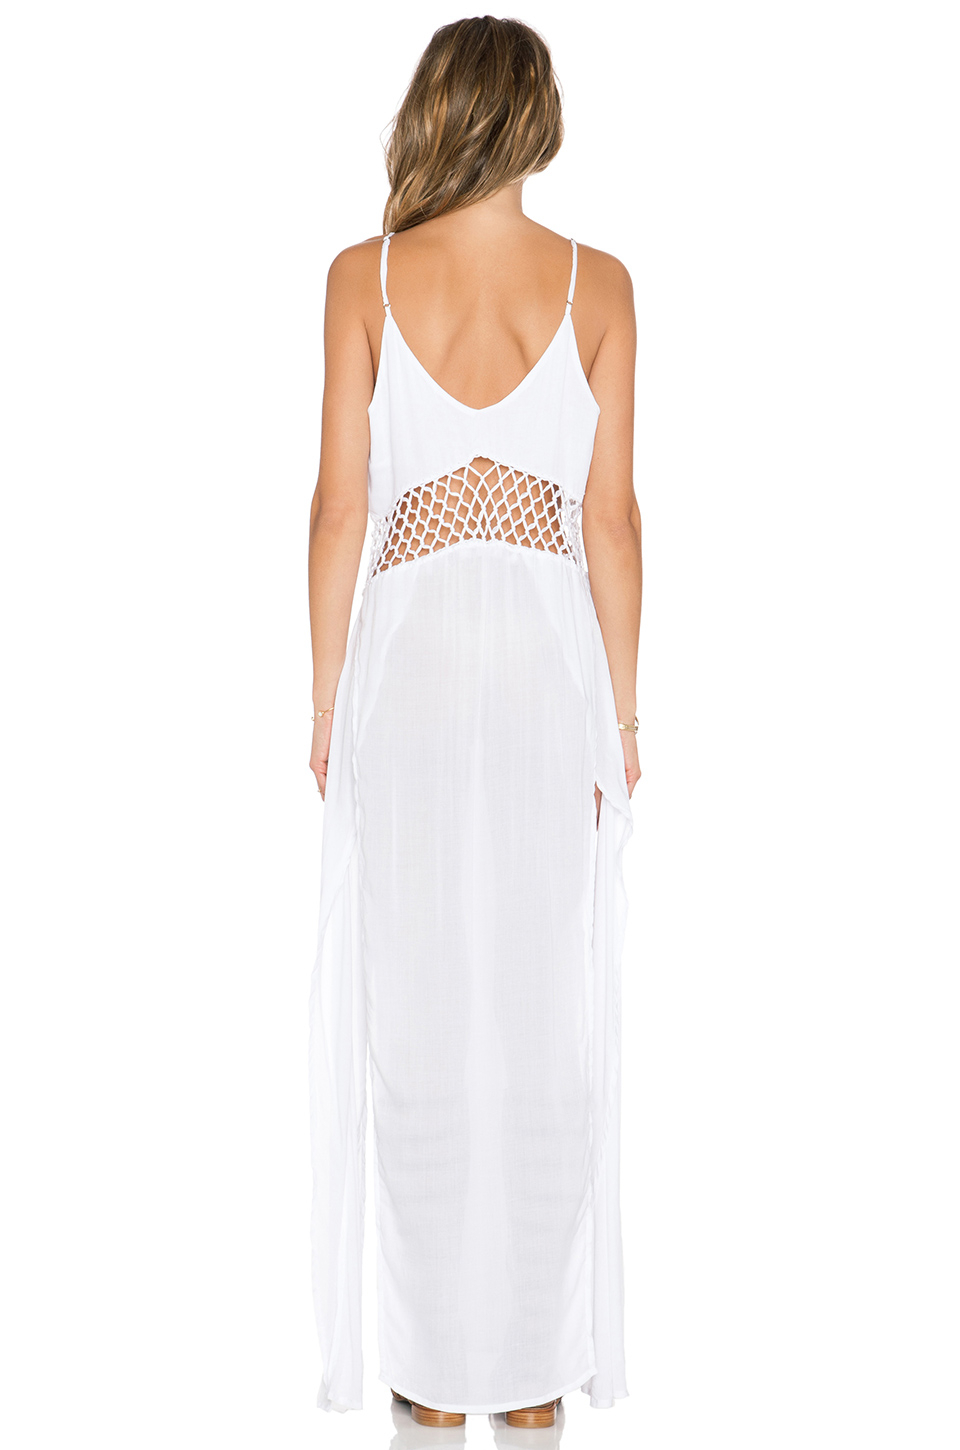 beca754bed Lyst - Indah Ulima Maxi Dress in White